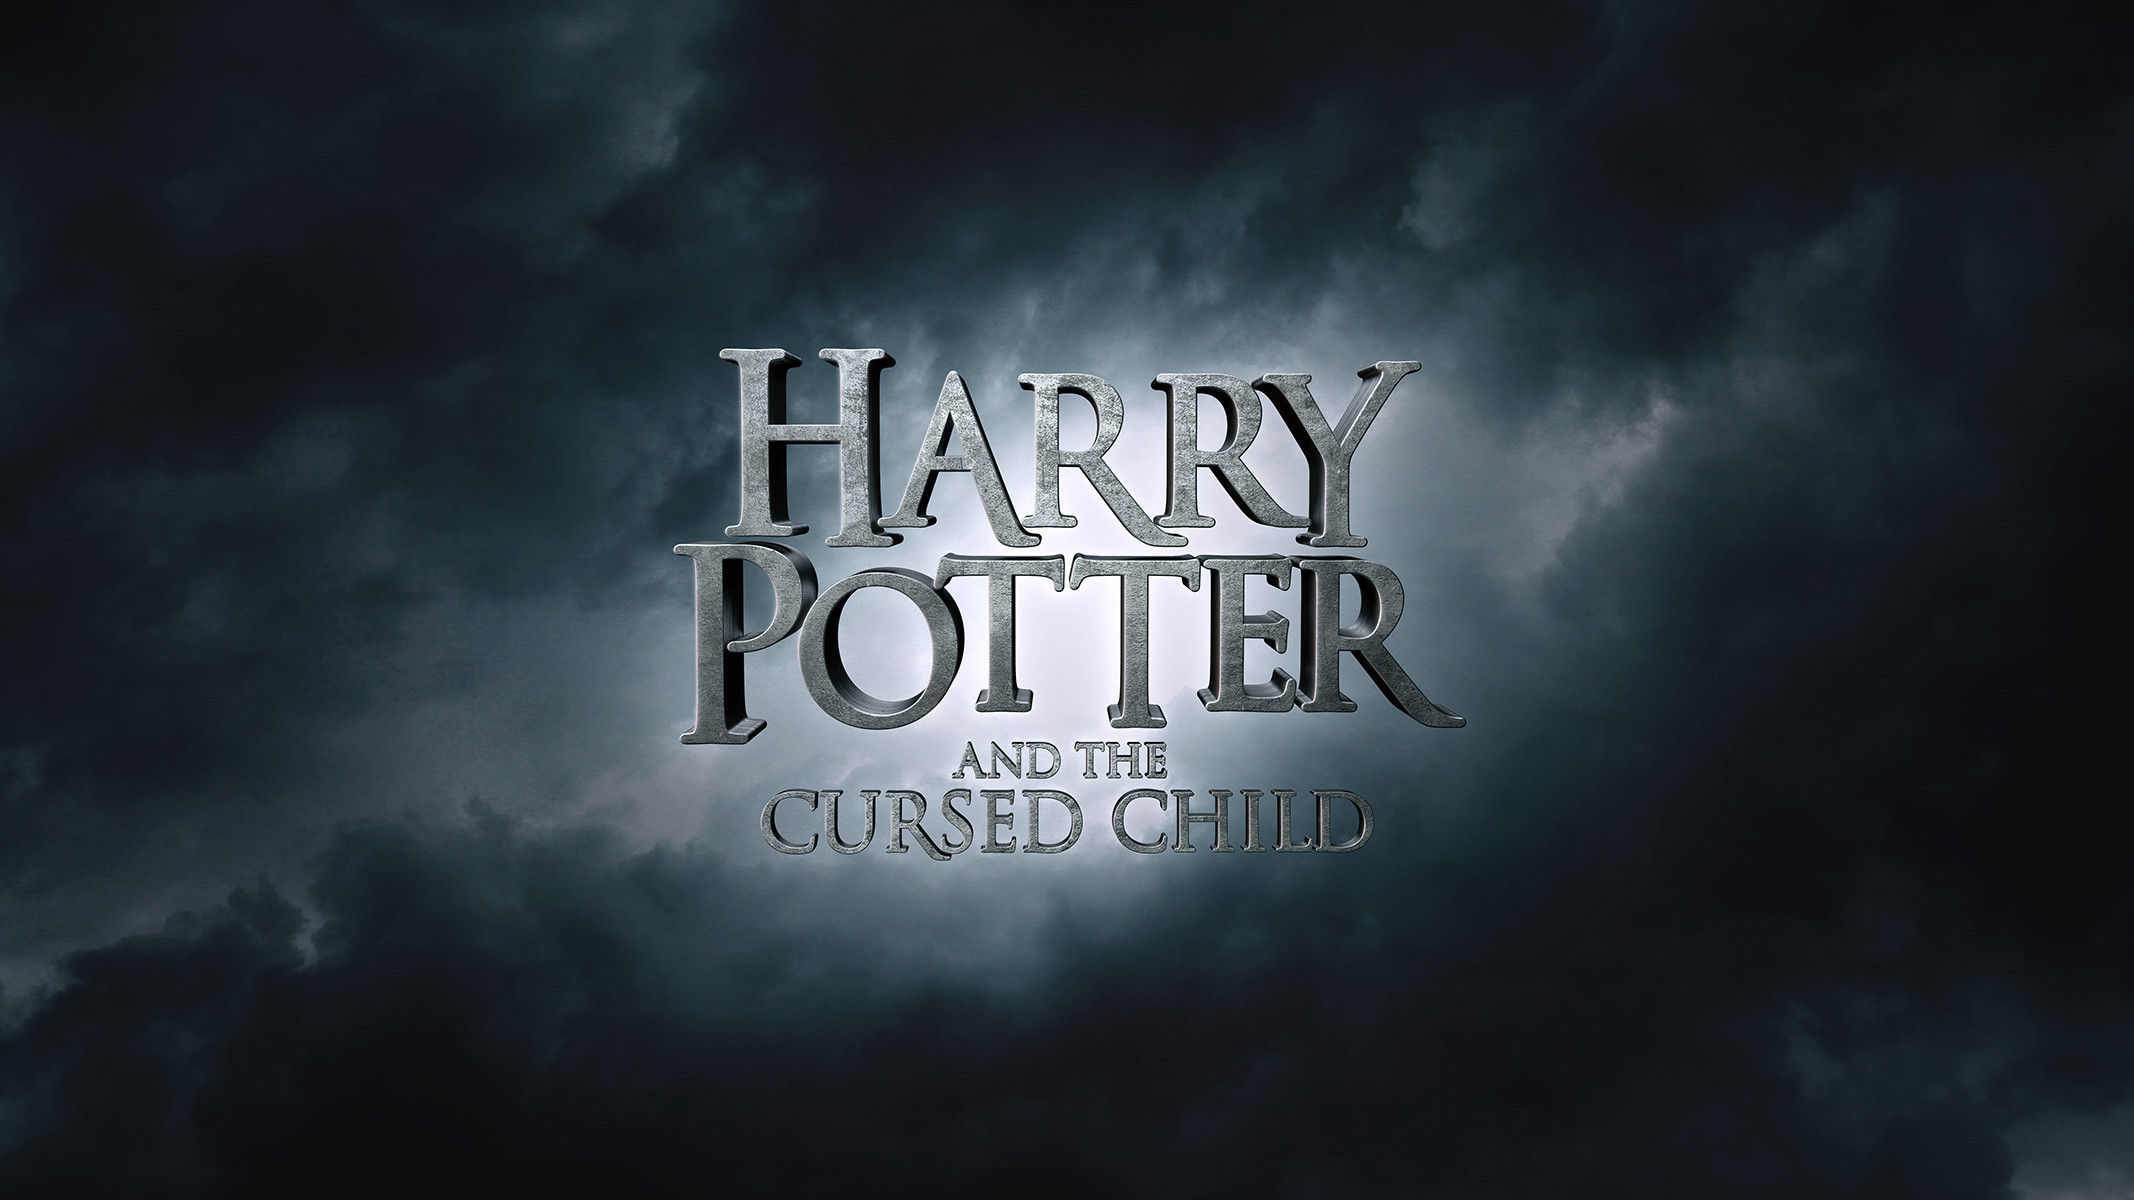 harry potter wallpaper computer